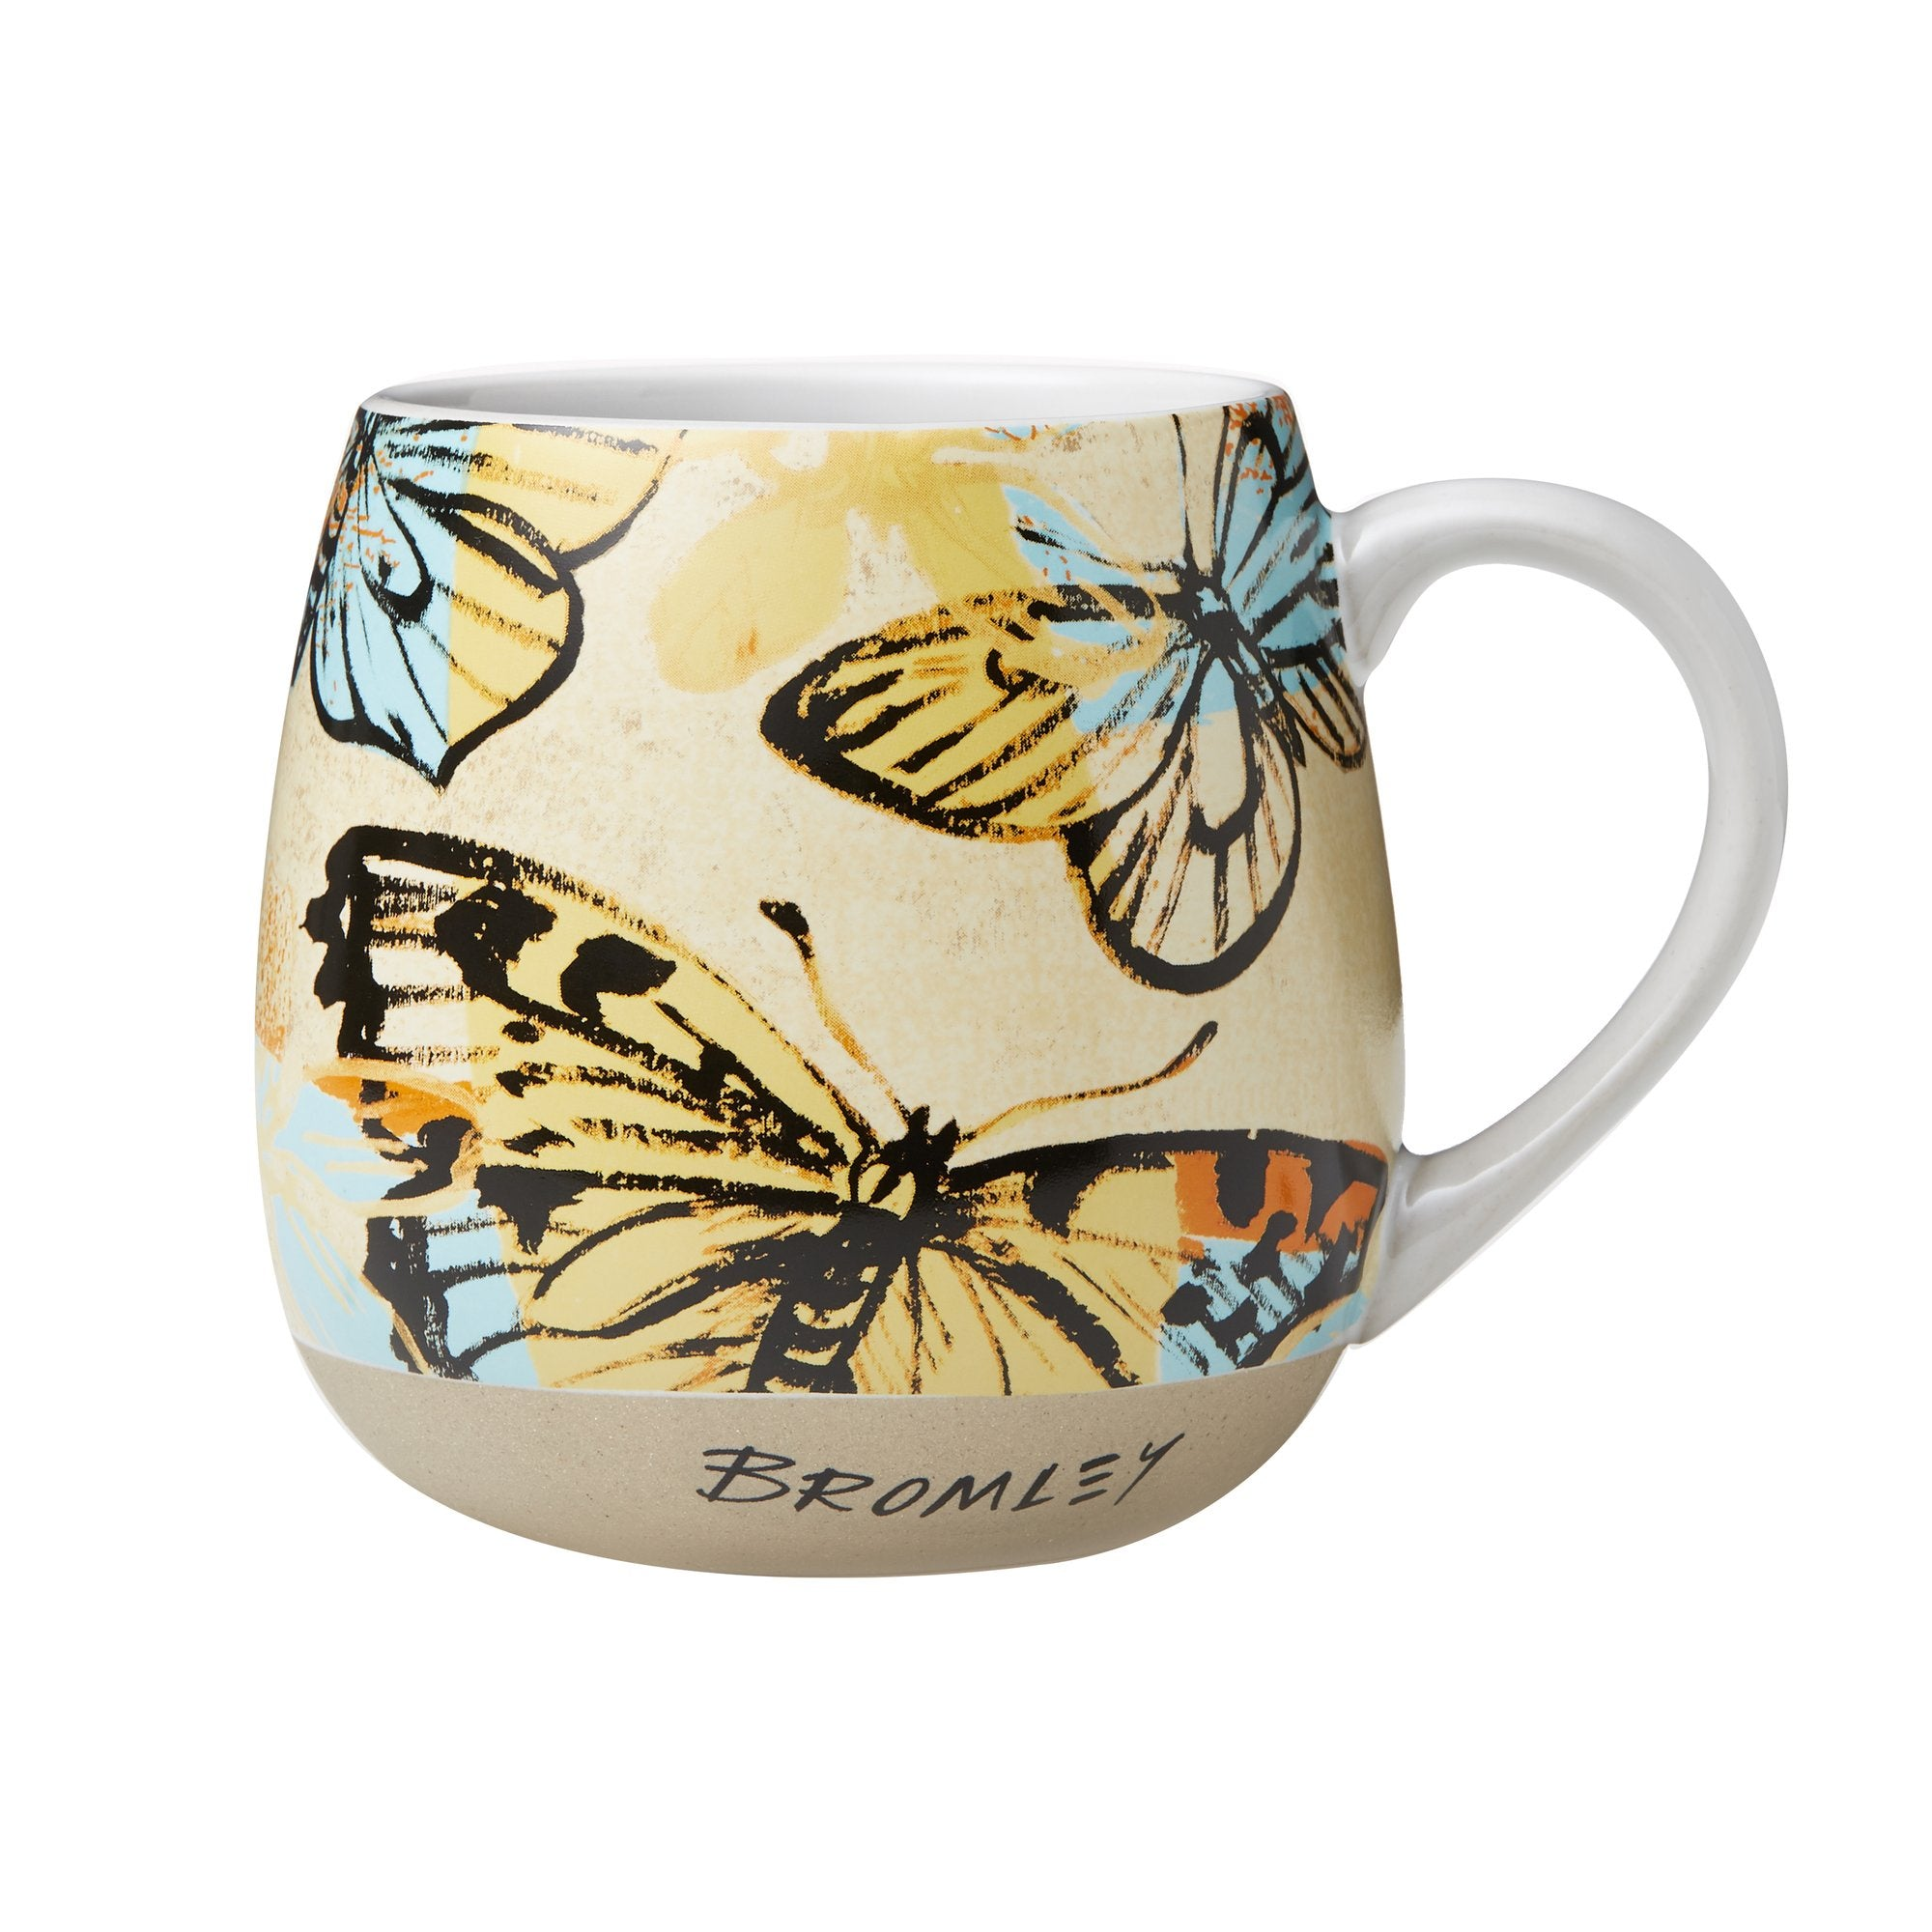 Hug Me Mug Bromley Butterflies Yellow